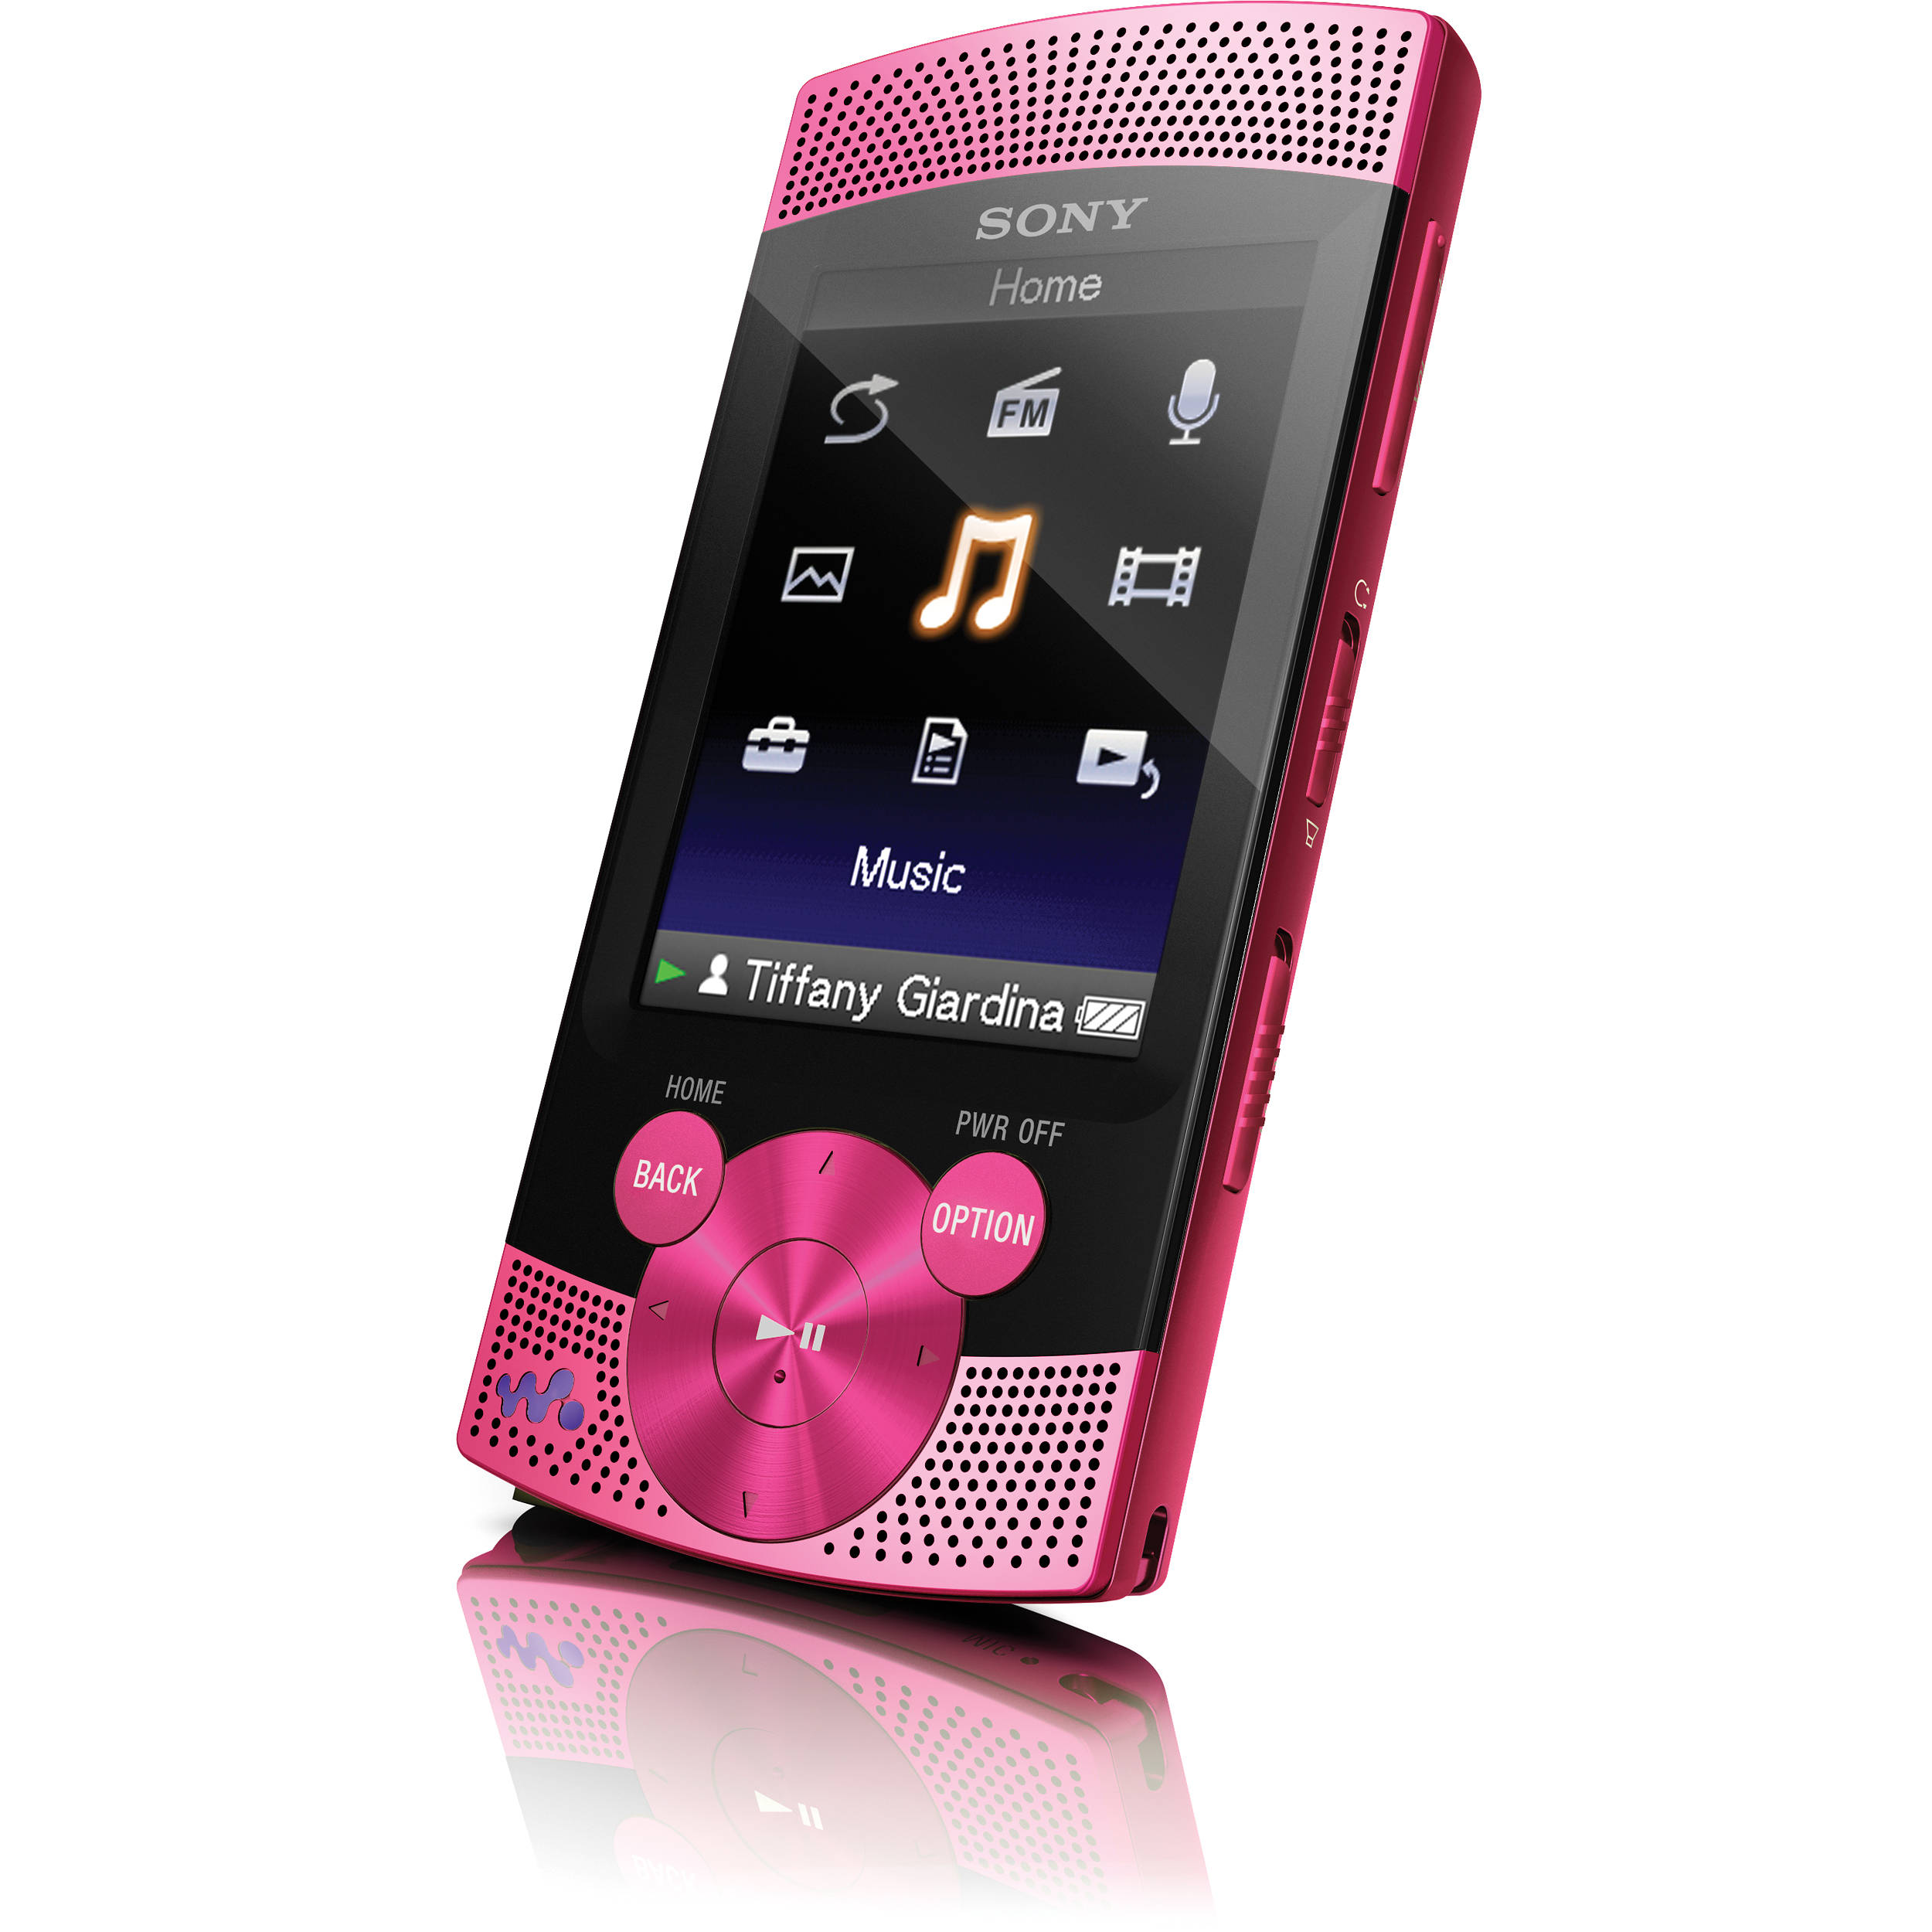 Best Mp3 Usb Amplifier And Radio Pink Sony Nwz S544 8gb S Series Walkman Video Player S544pnk